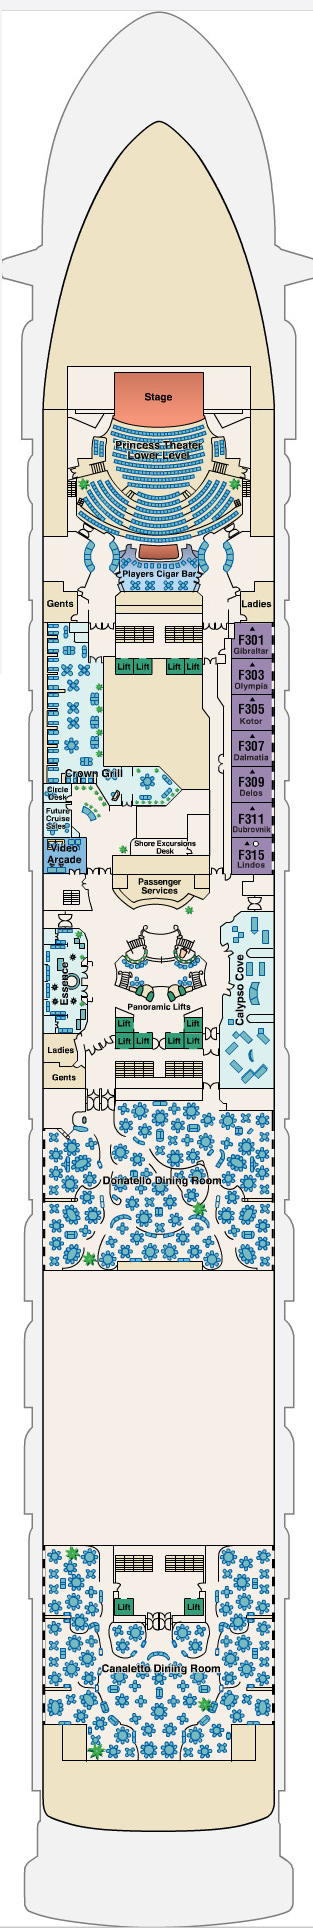 Golden Princess Fiesta Deck 6 layout